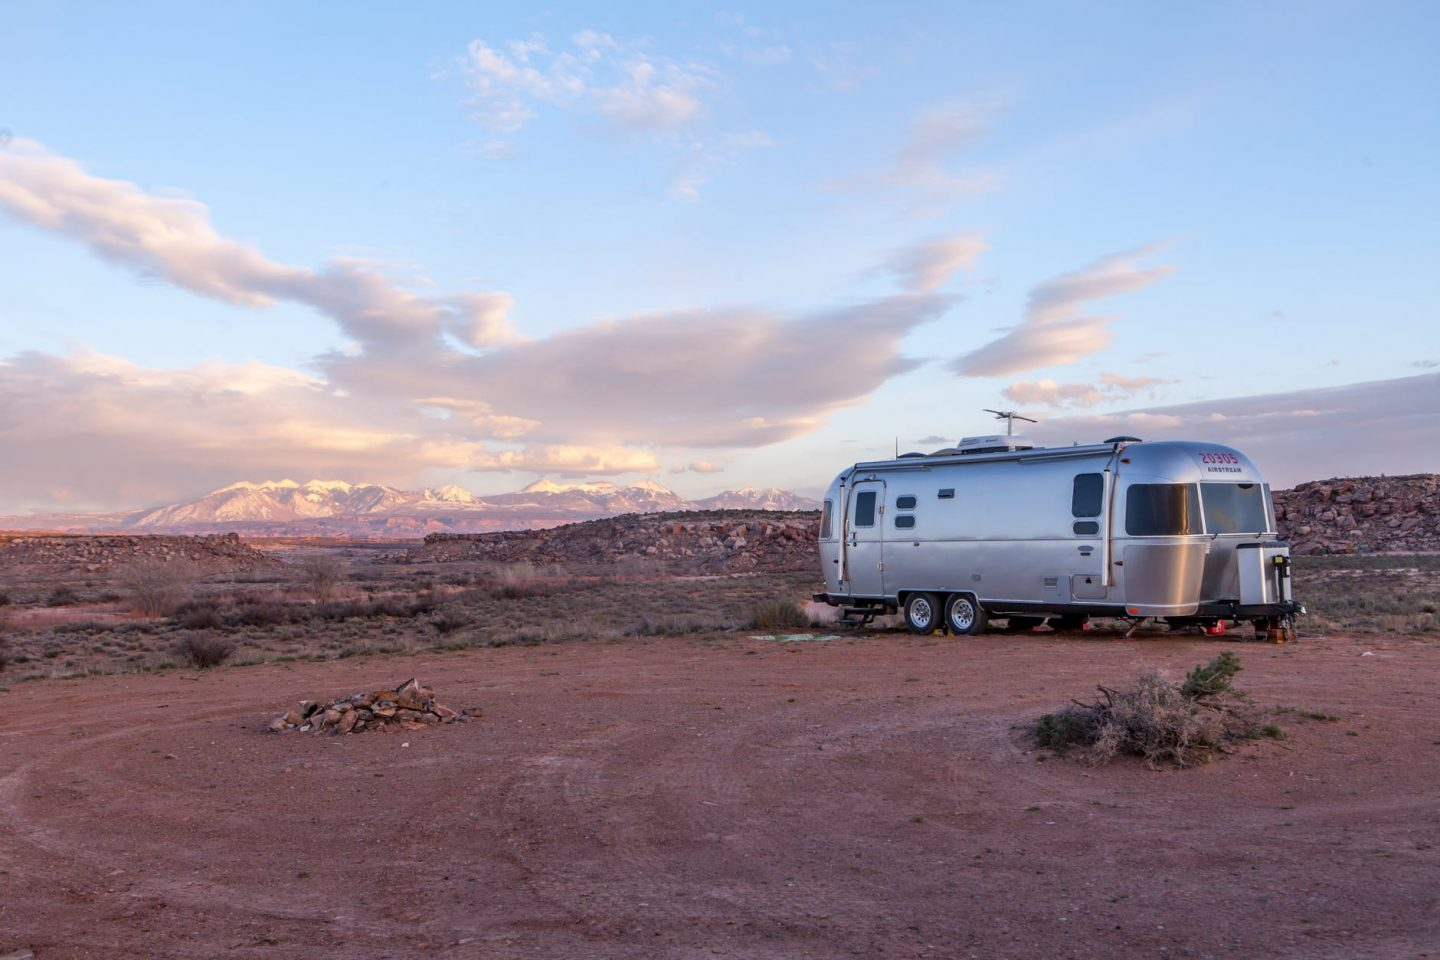 How To Work Remotely and be a Digital Nomad from a Motorhome